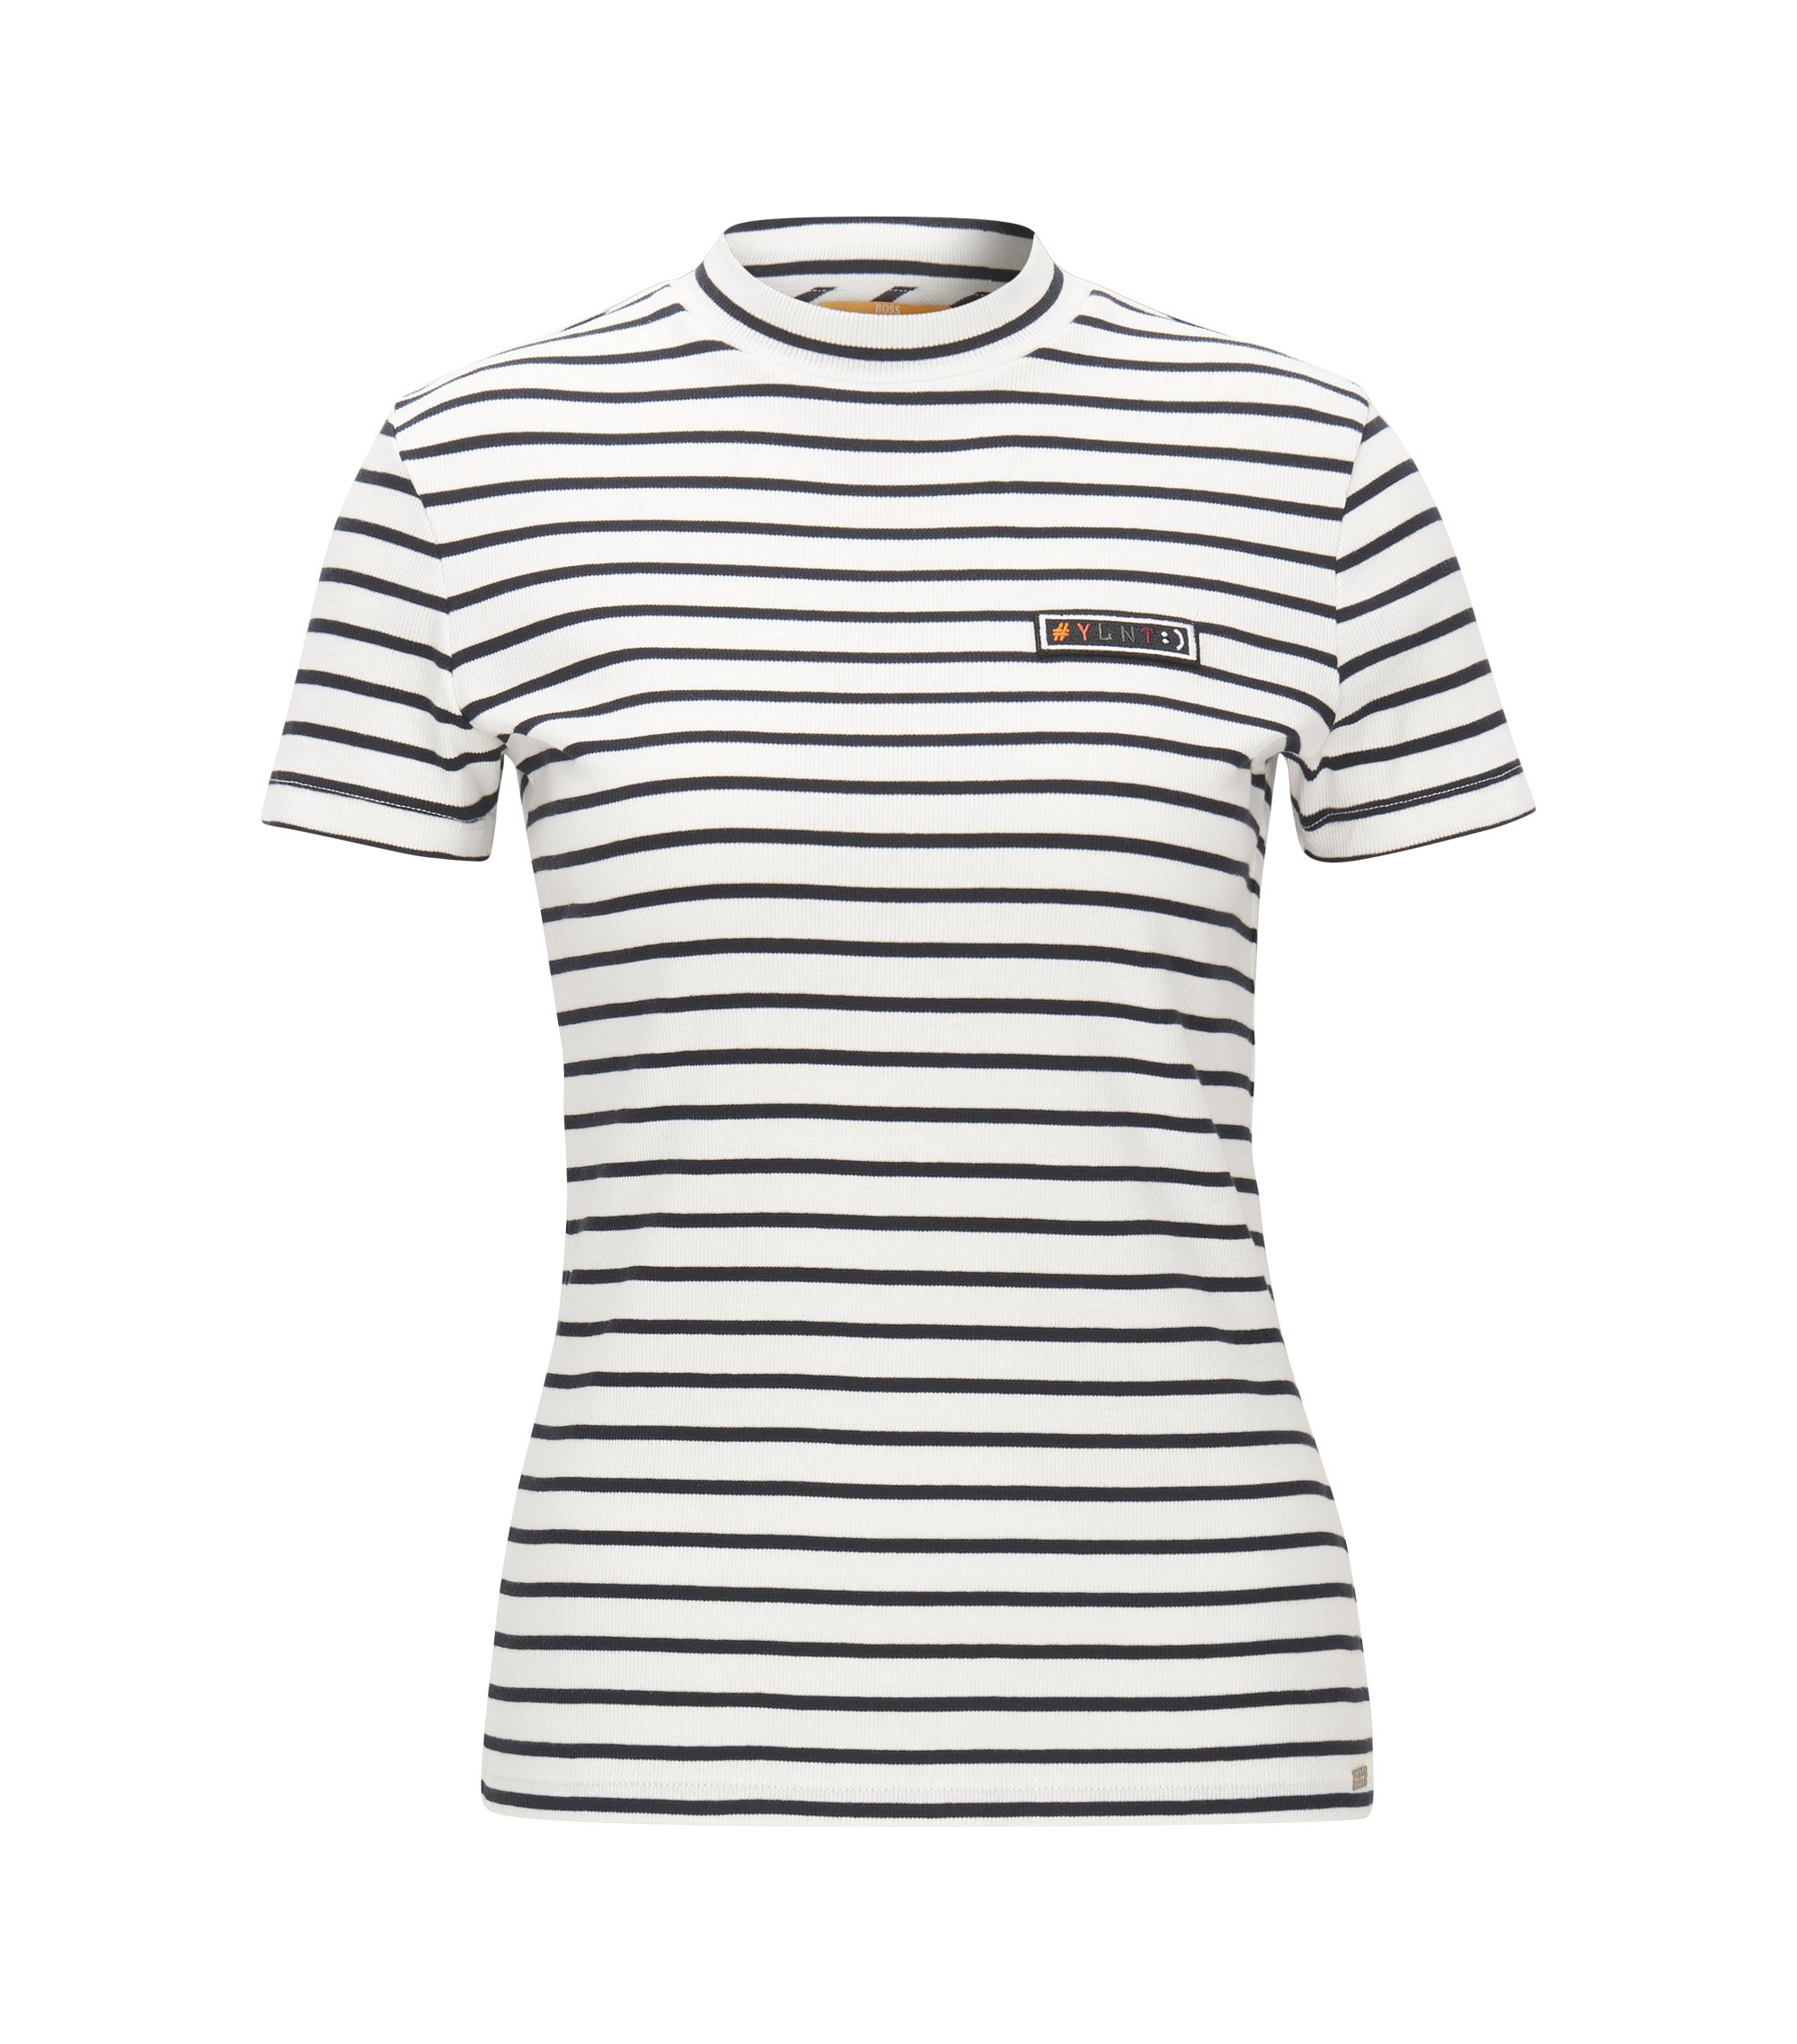 Slim-fit T-shirt in striped rib jersey, Natural